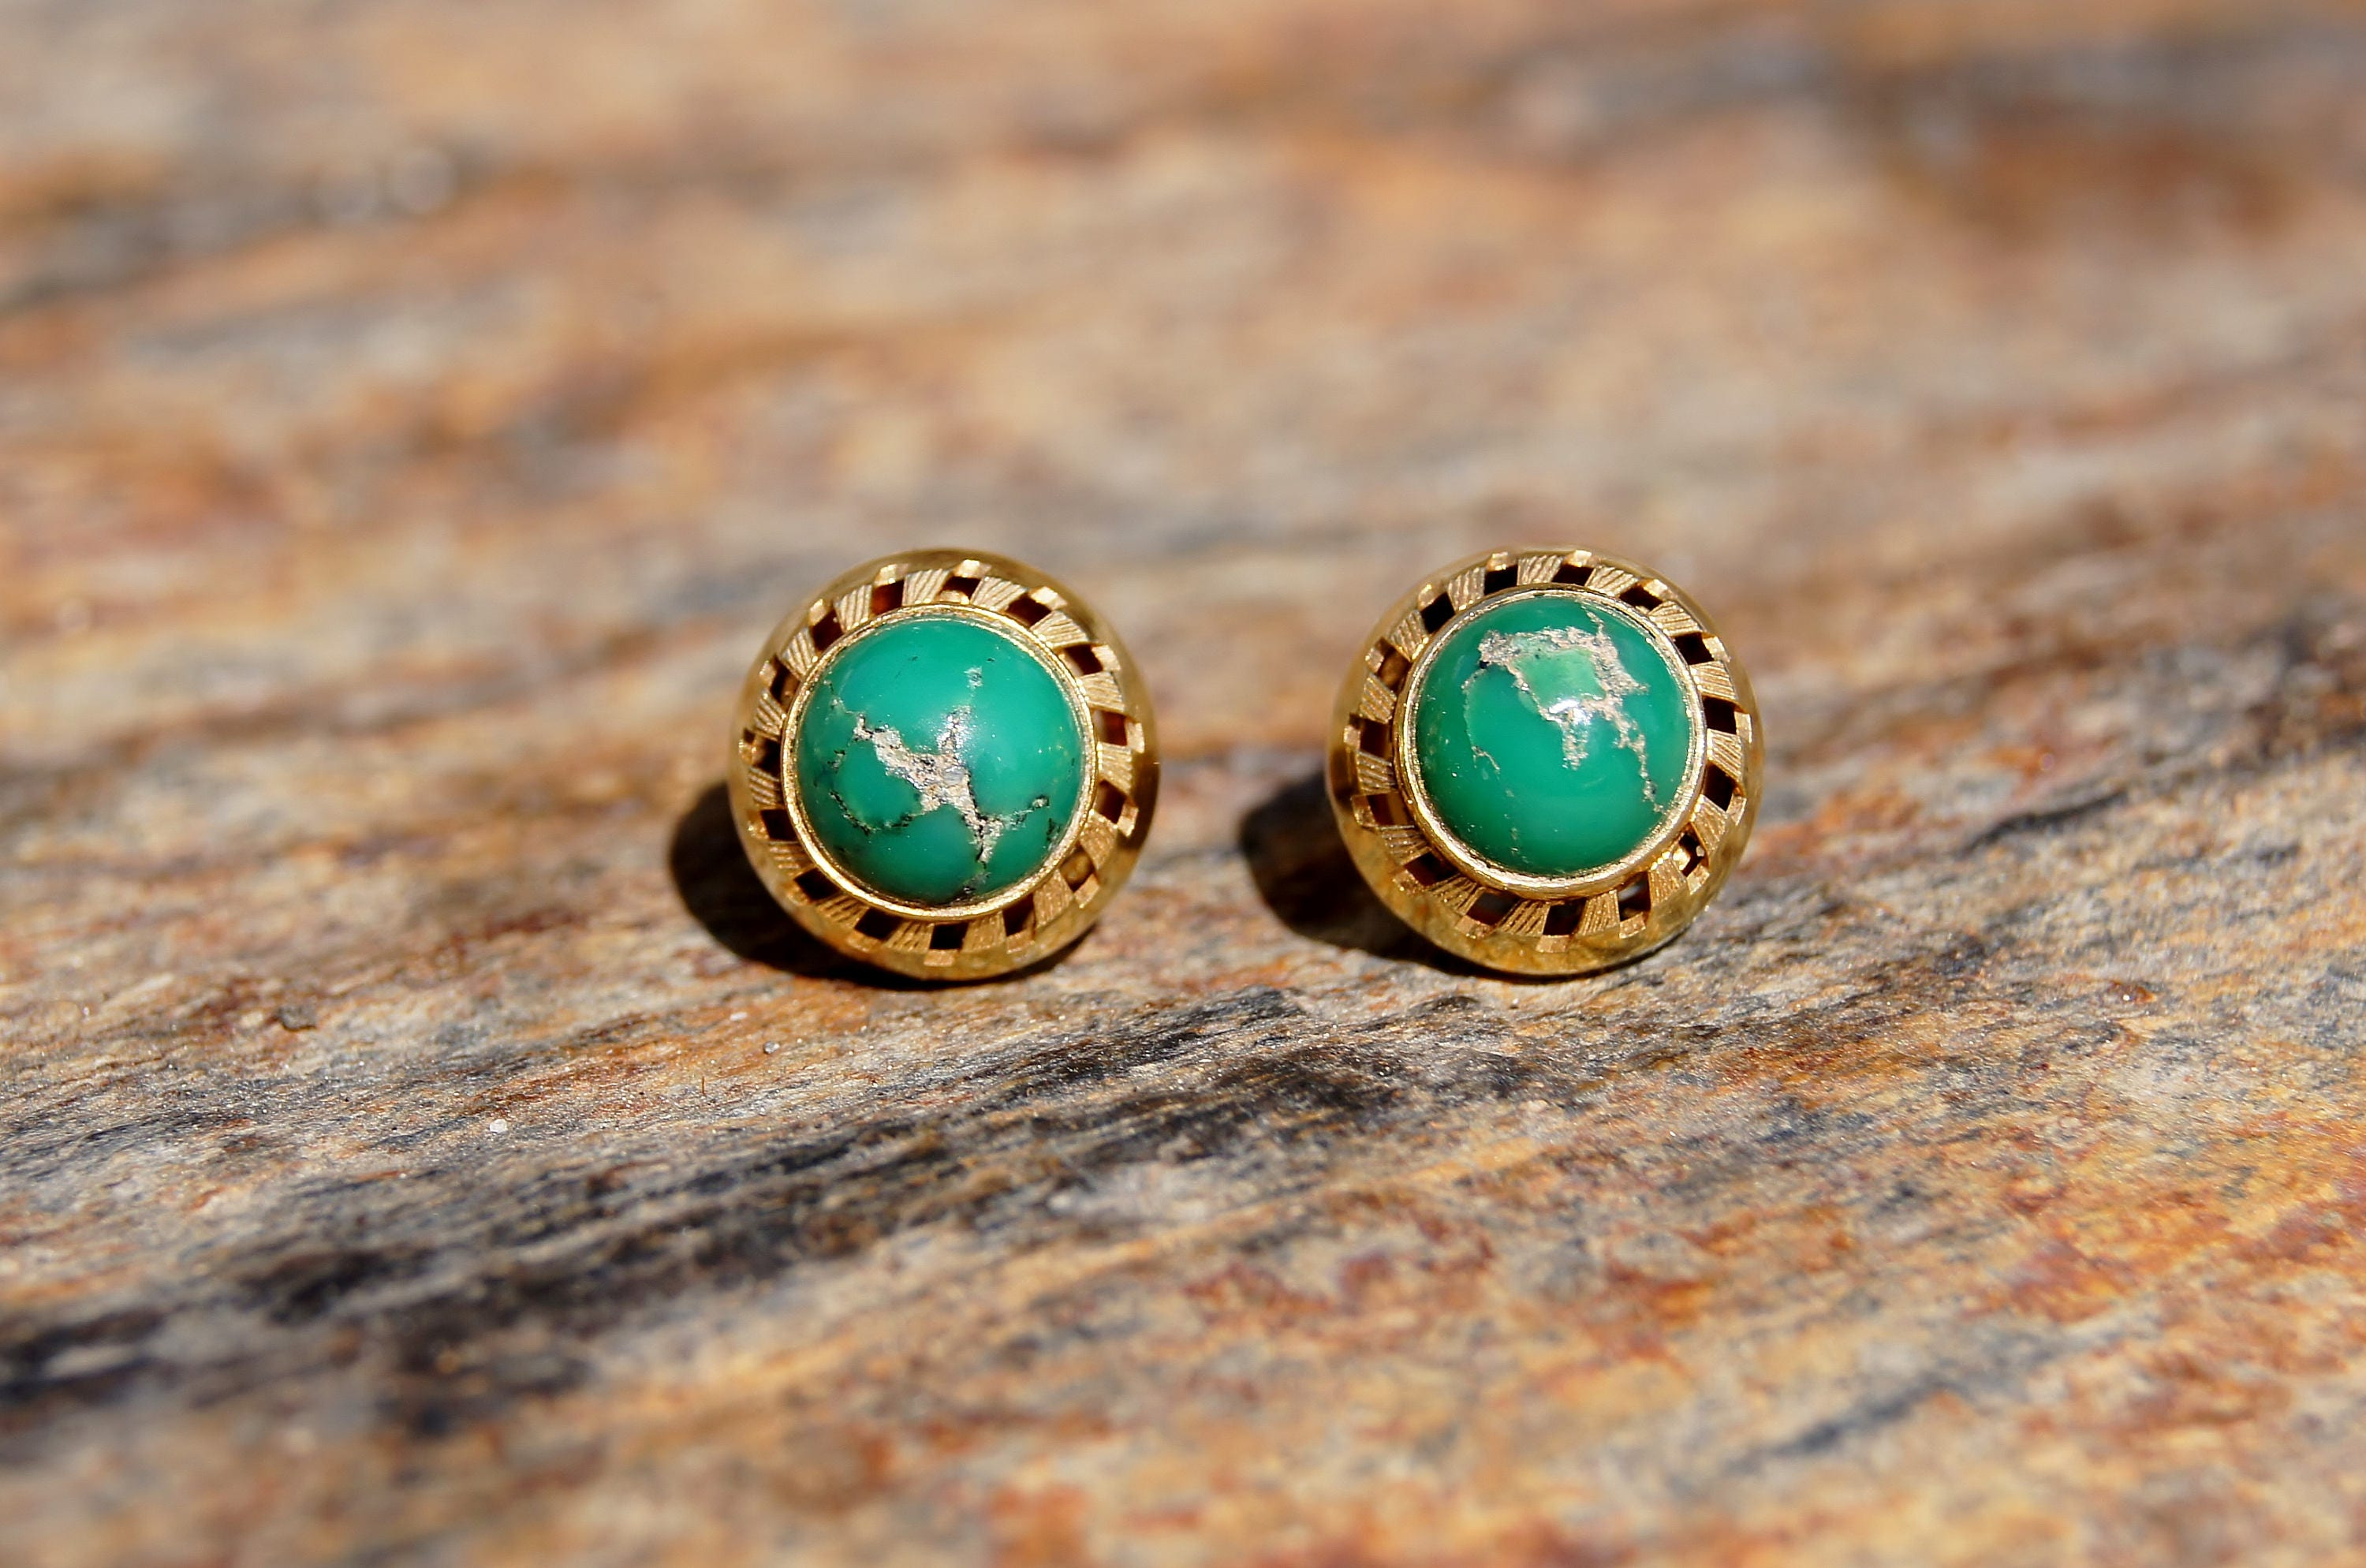 mango a thailand made our pair in inlay wood mood stud earrings goods turquoise jewelry mellow